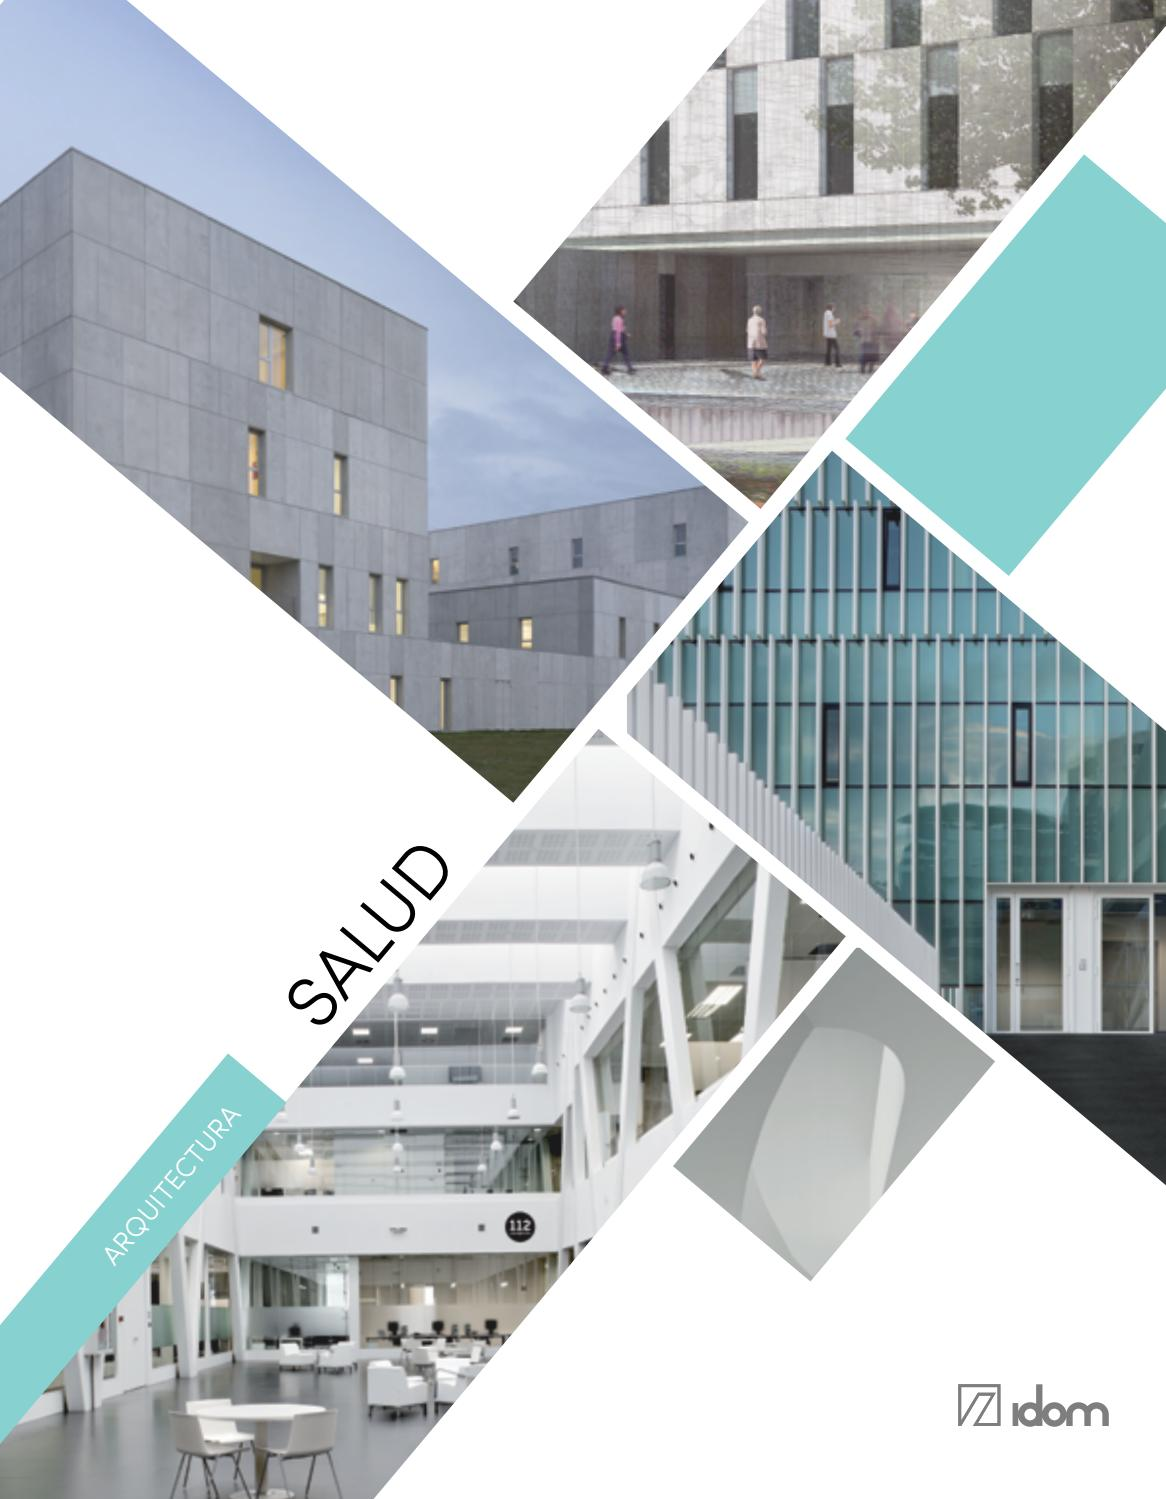 libro idom arquitectura salud by idom issuu On arquitectura y salud